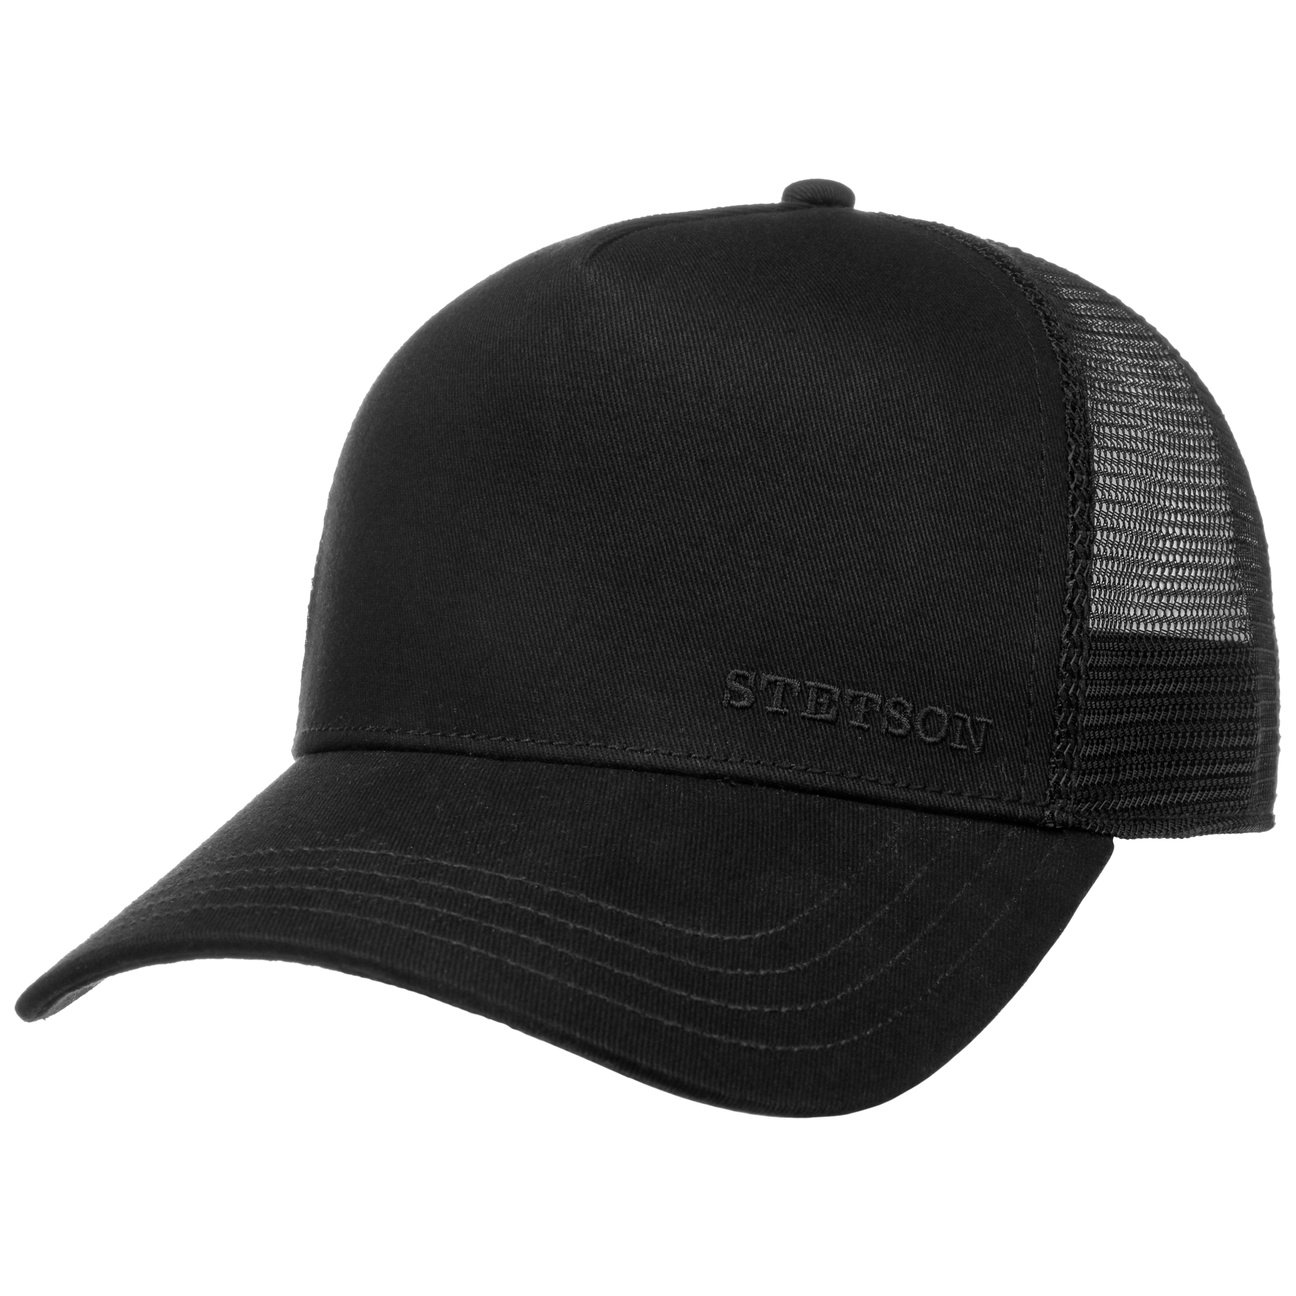 Classic Trucker Cap by Stetson